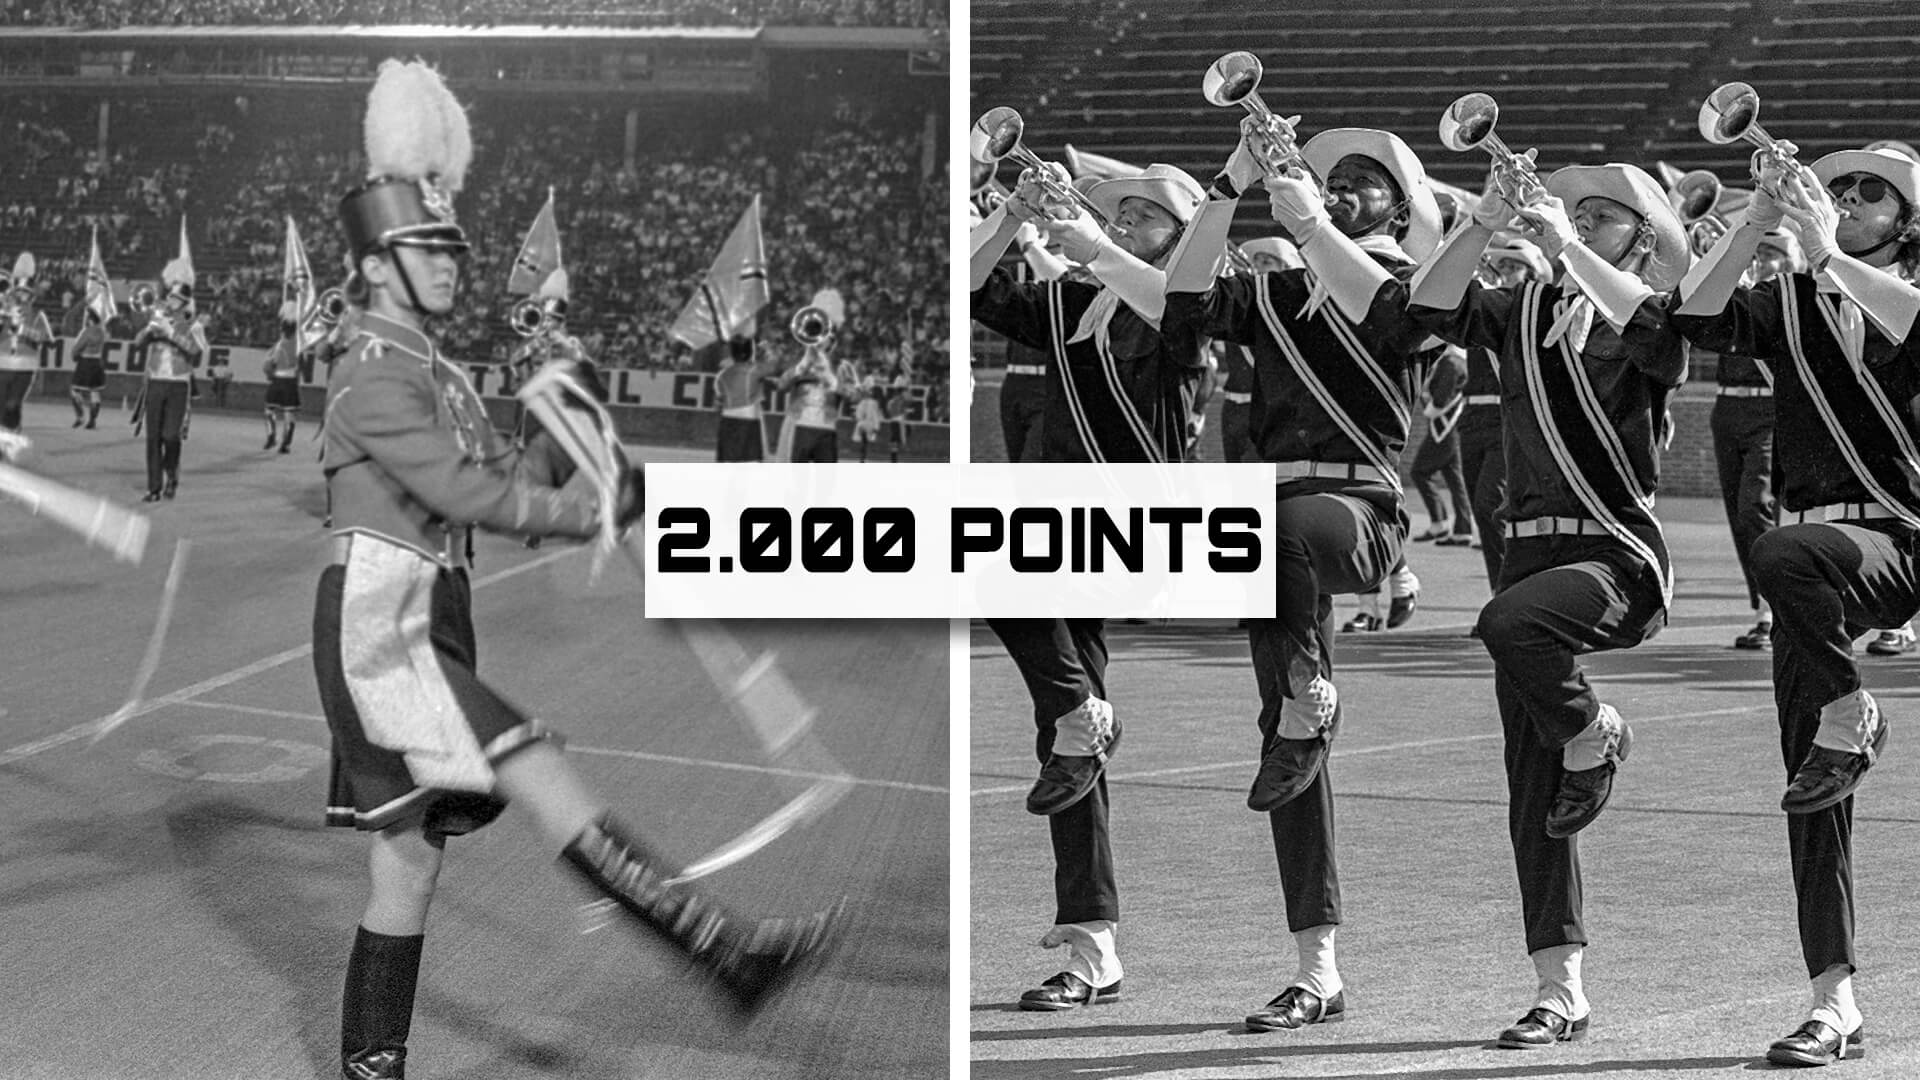 2.000 points - 1976